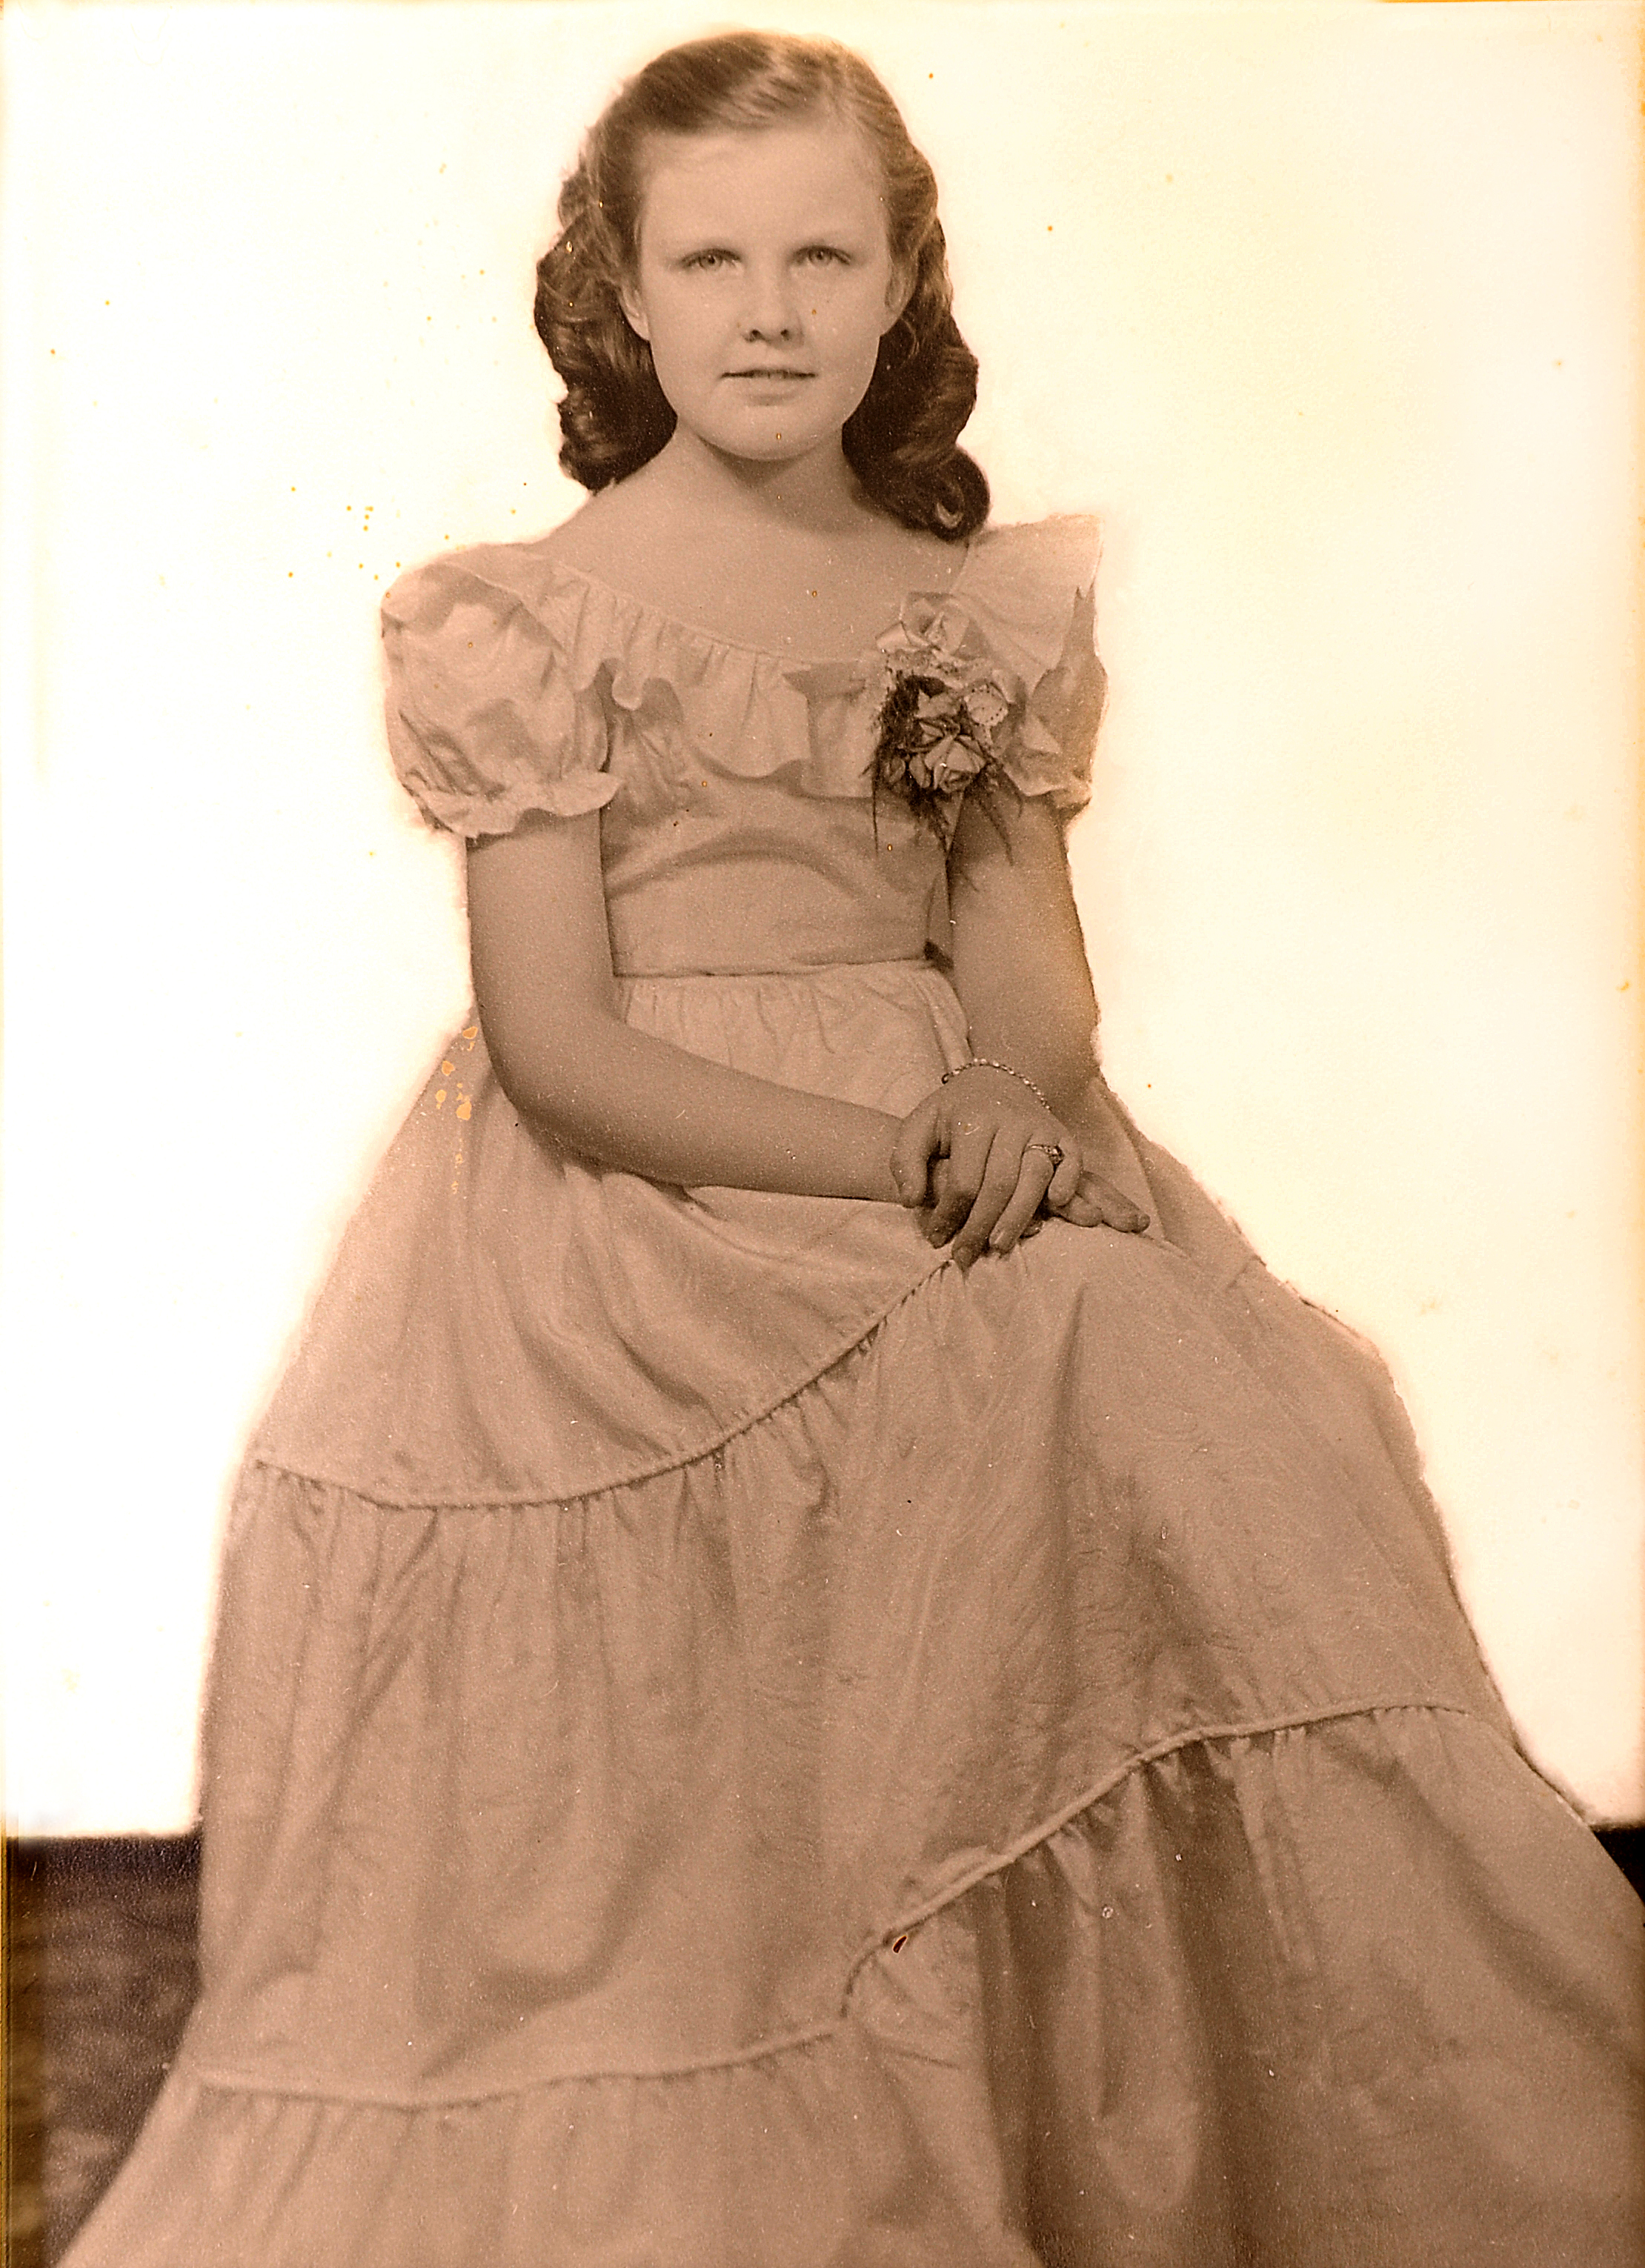 At a young age, Sally was taught to wear and appreciate beautiful clothes.